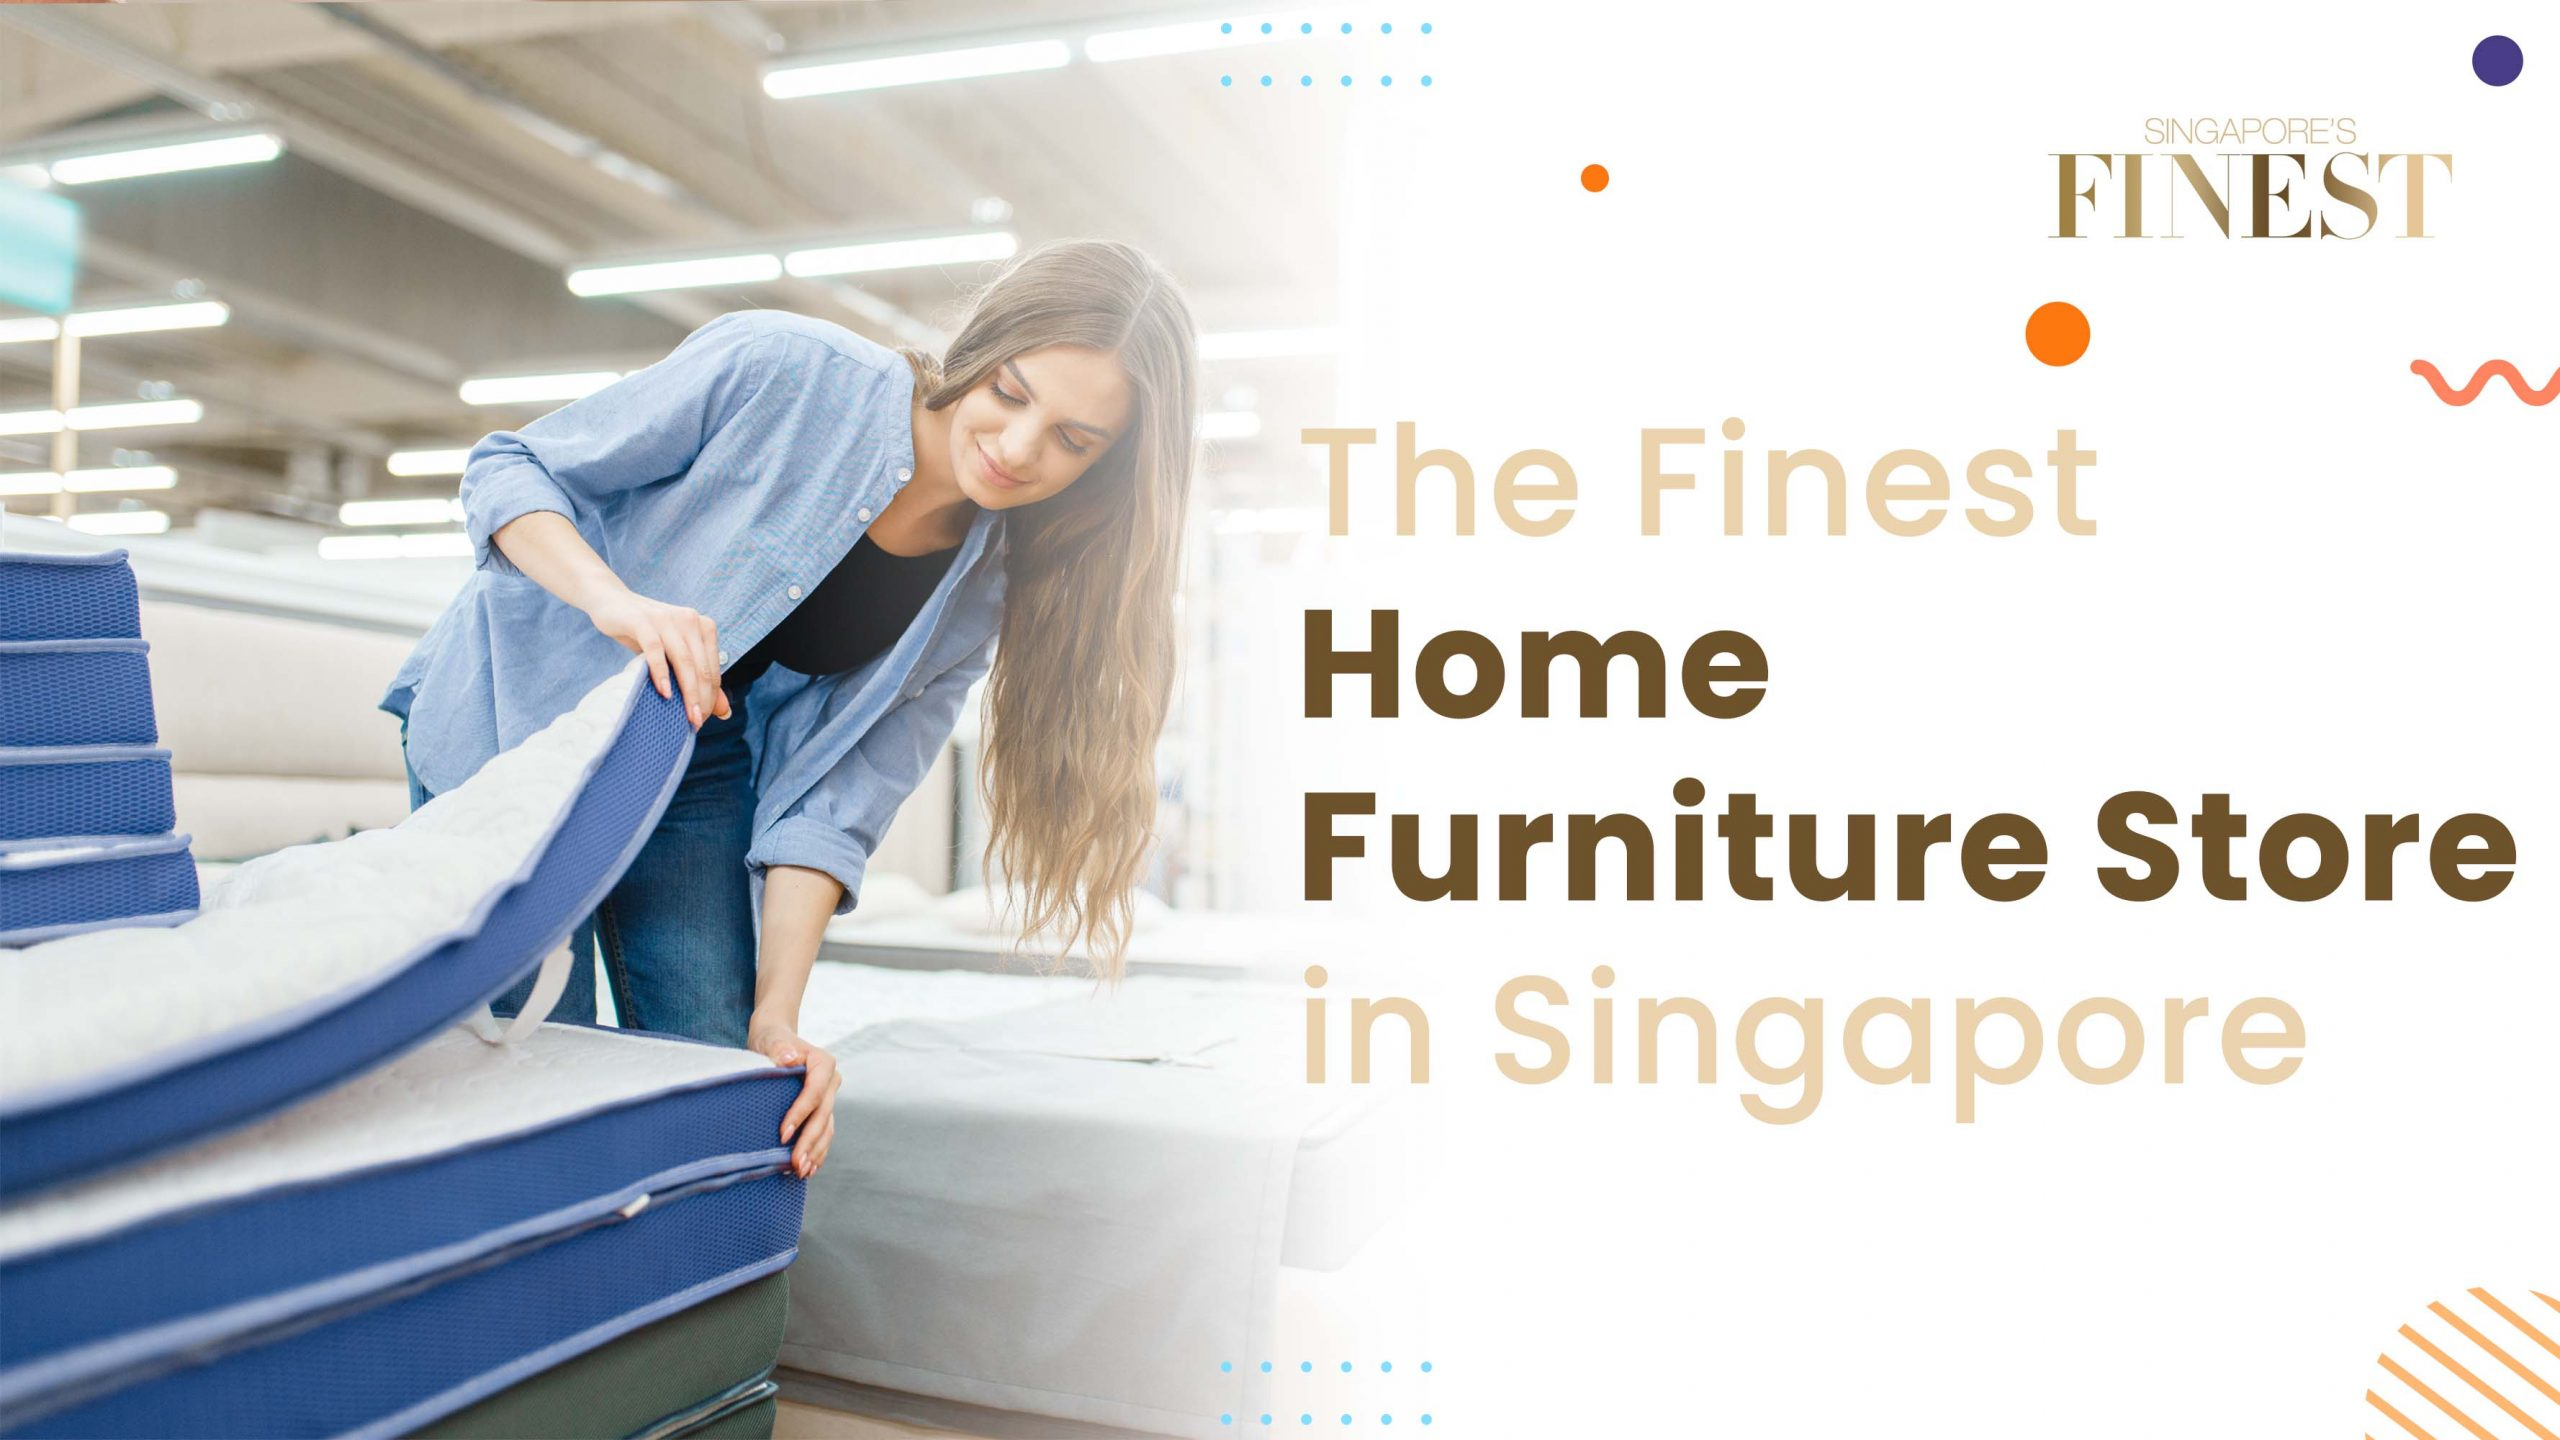 Home Furniture Store in Singapore